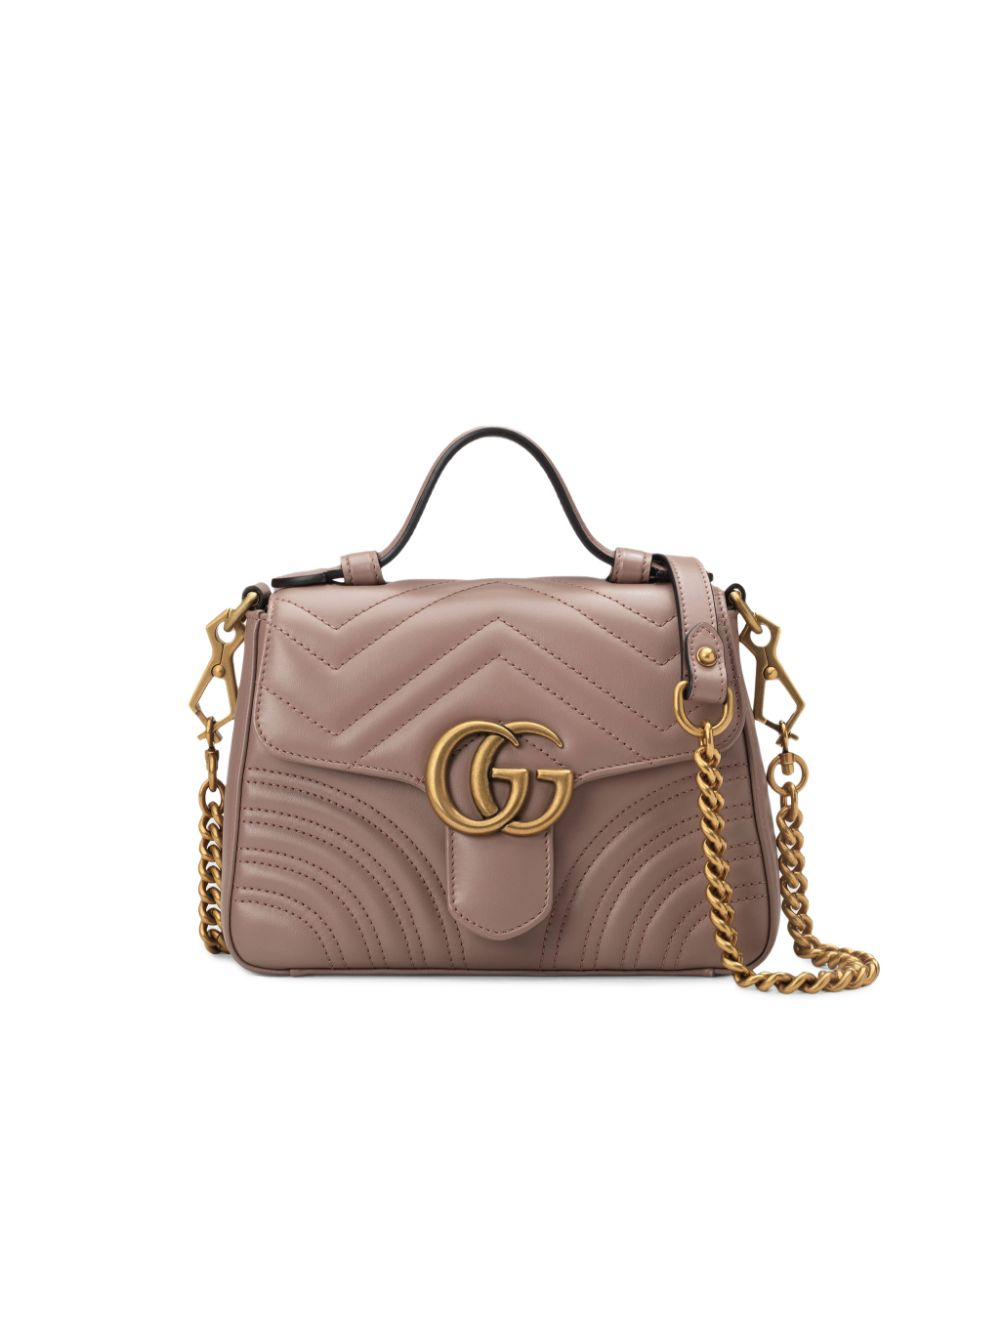 Medium Gg Marmont Handbag